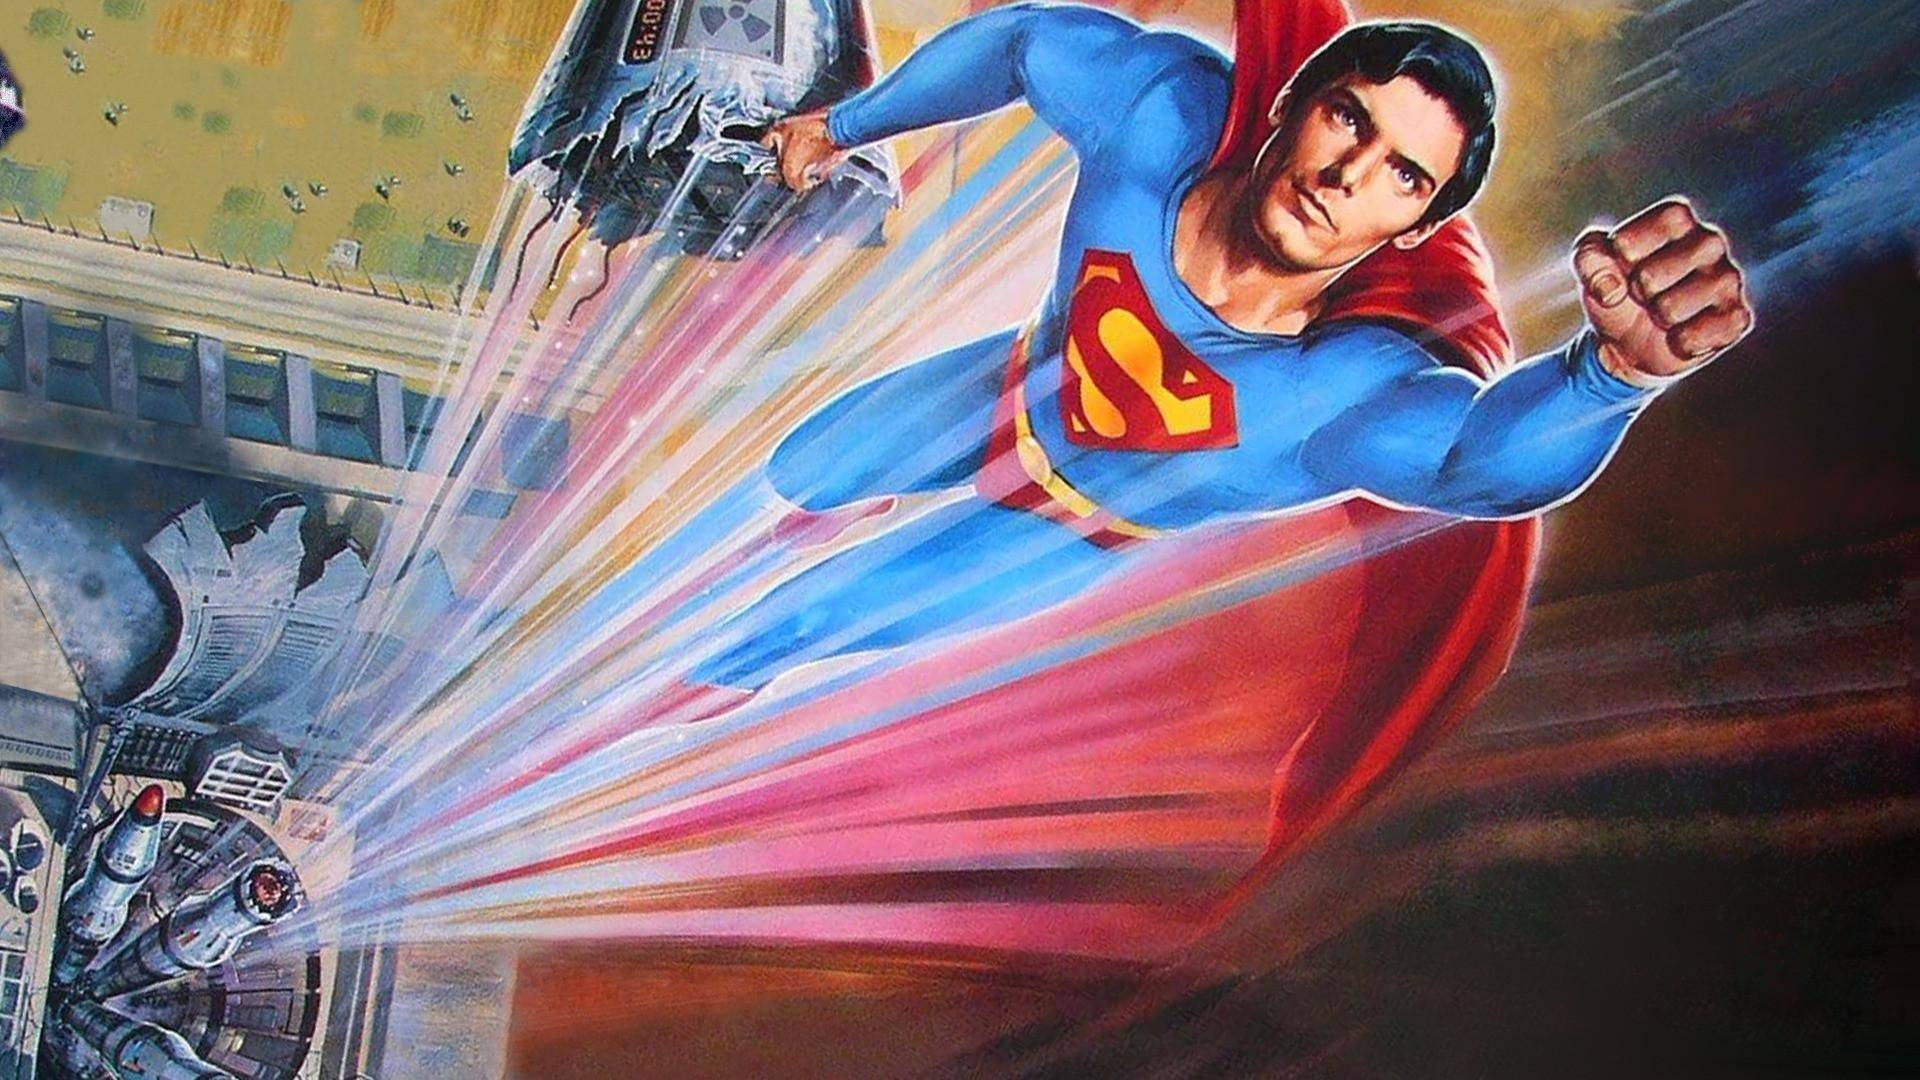 Superman IV: The Quest for Peace (Wallpaper) - Superheroes Wallpaper